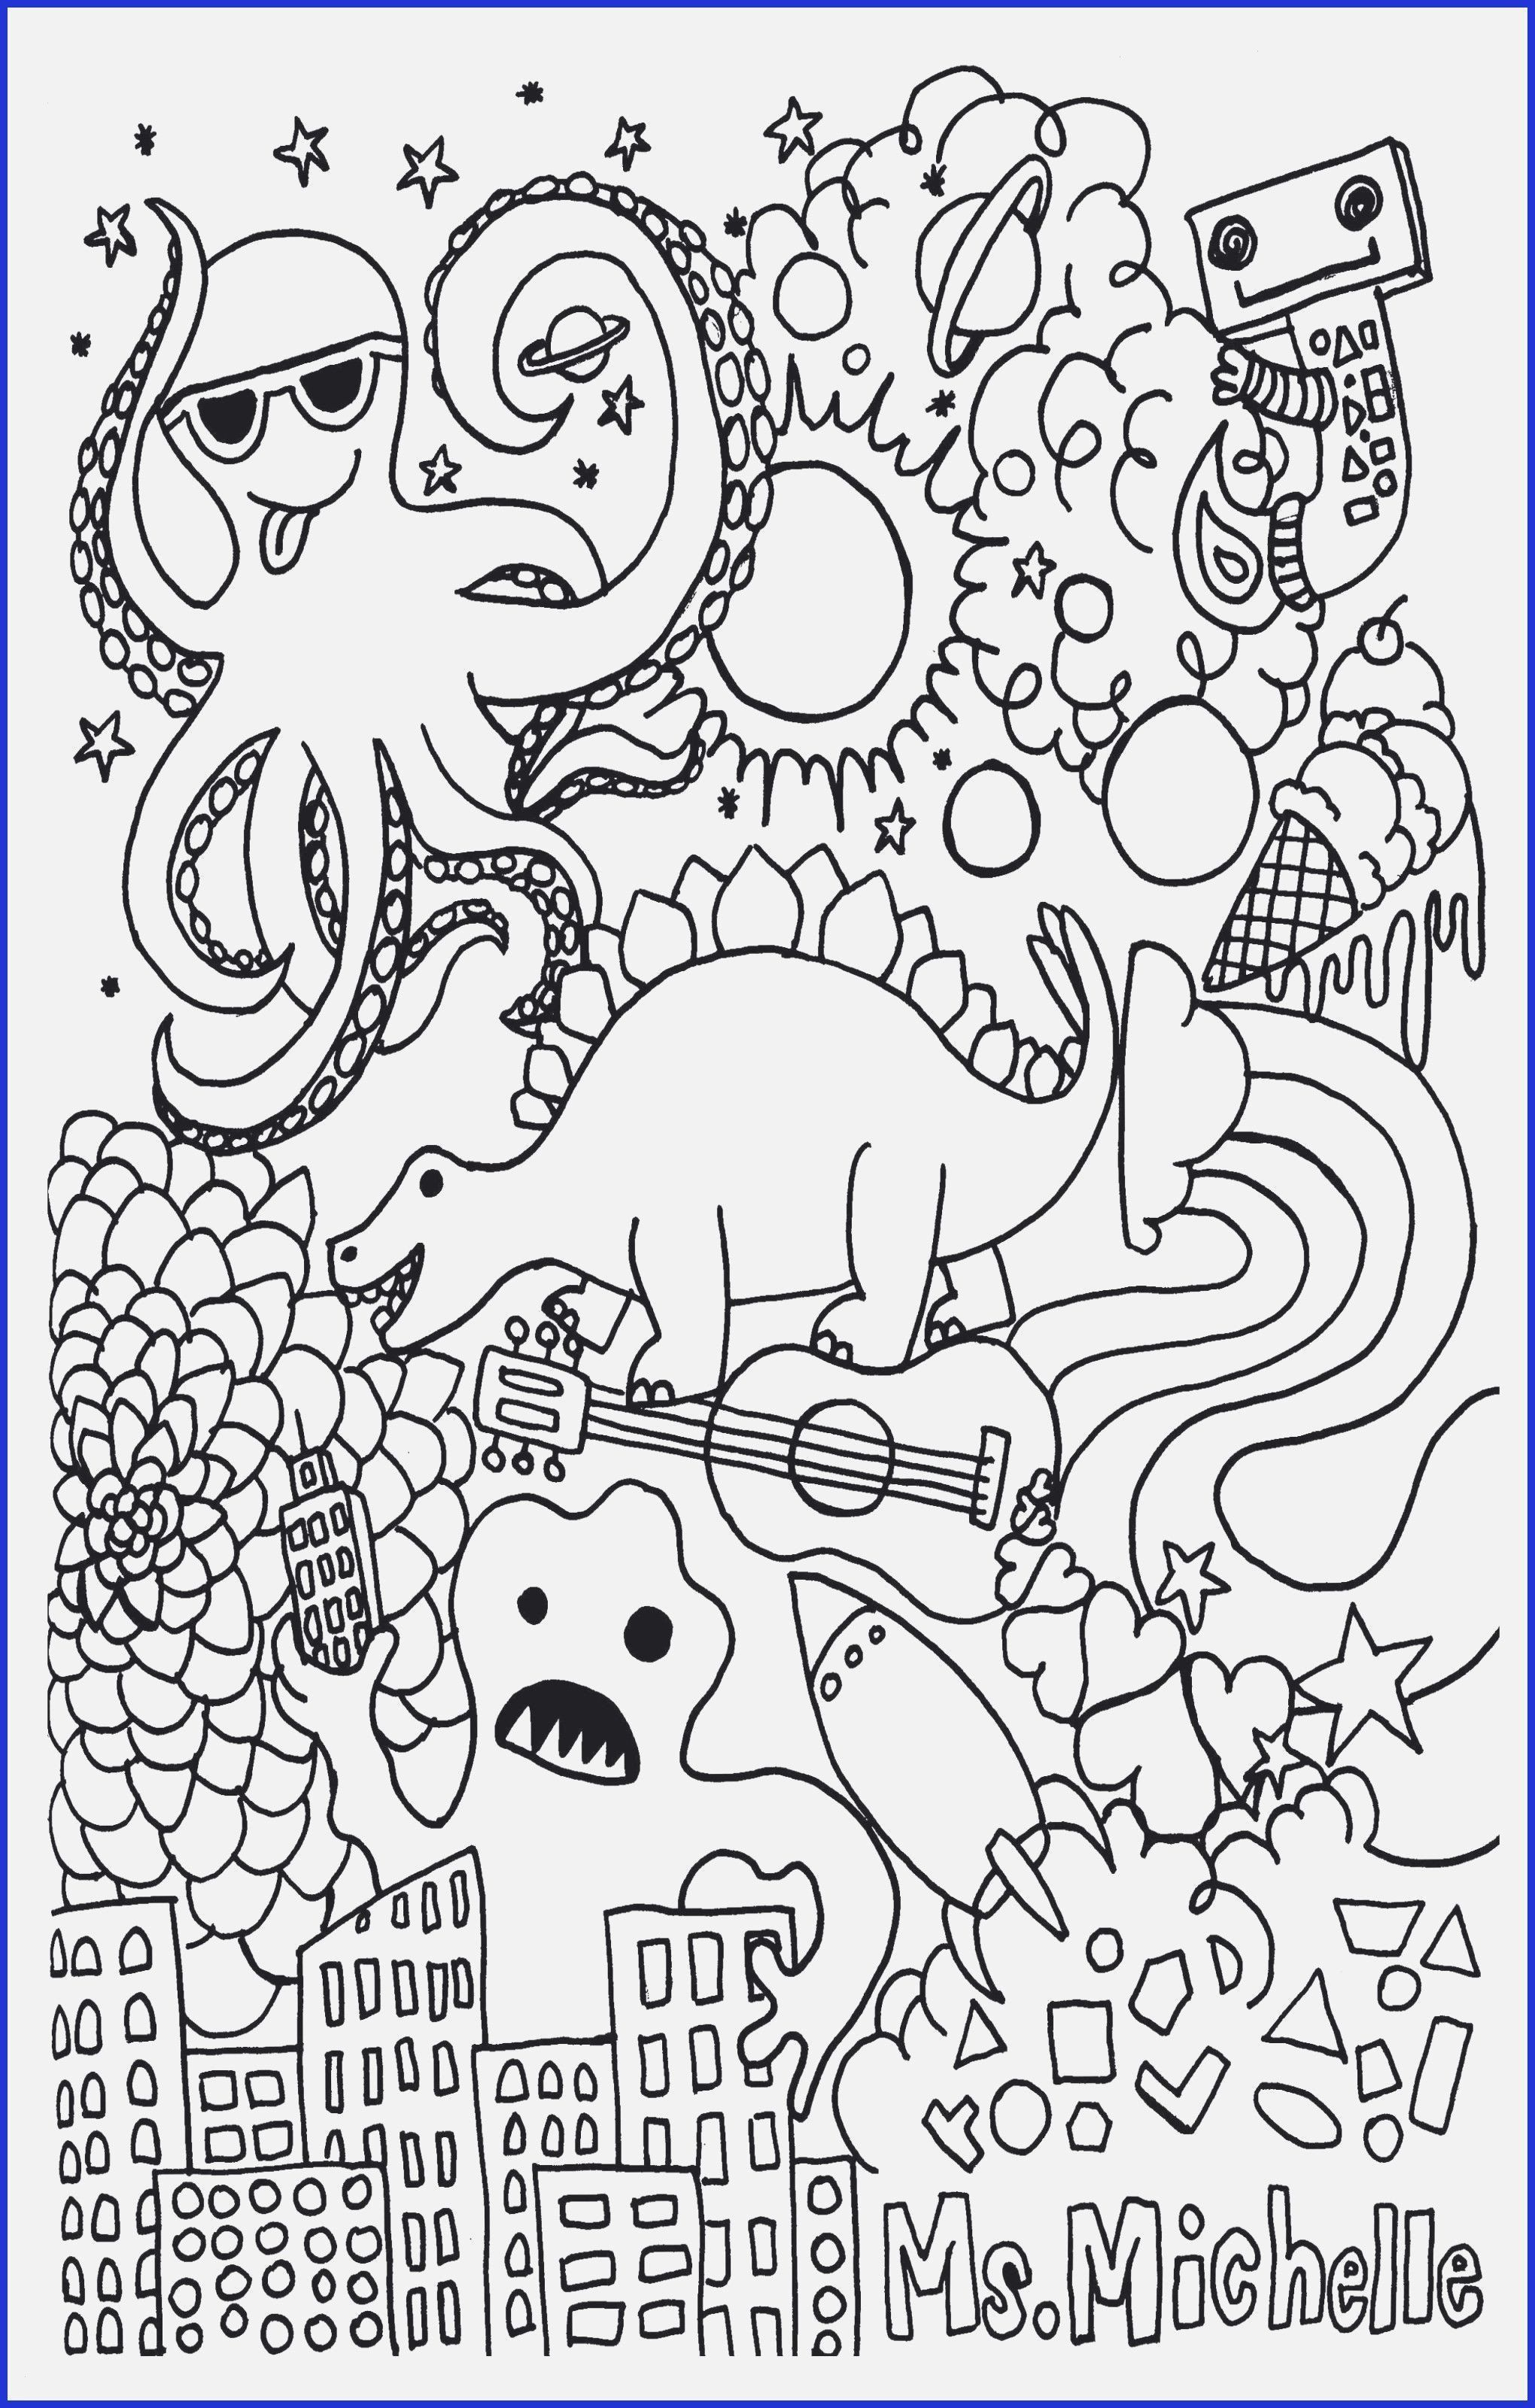 Zoo Animals Alphabet Coloring Pages by The Kinder Kids | TpT | 3201x2040